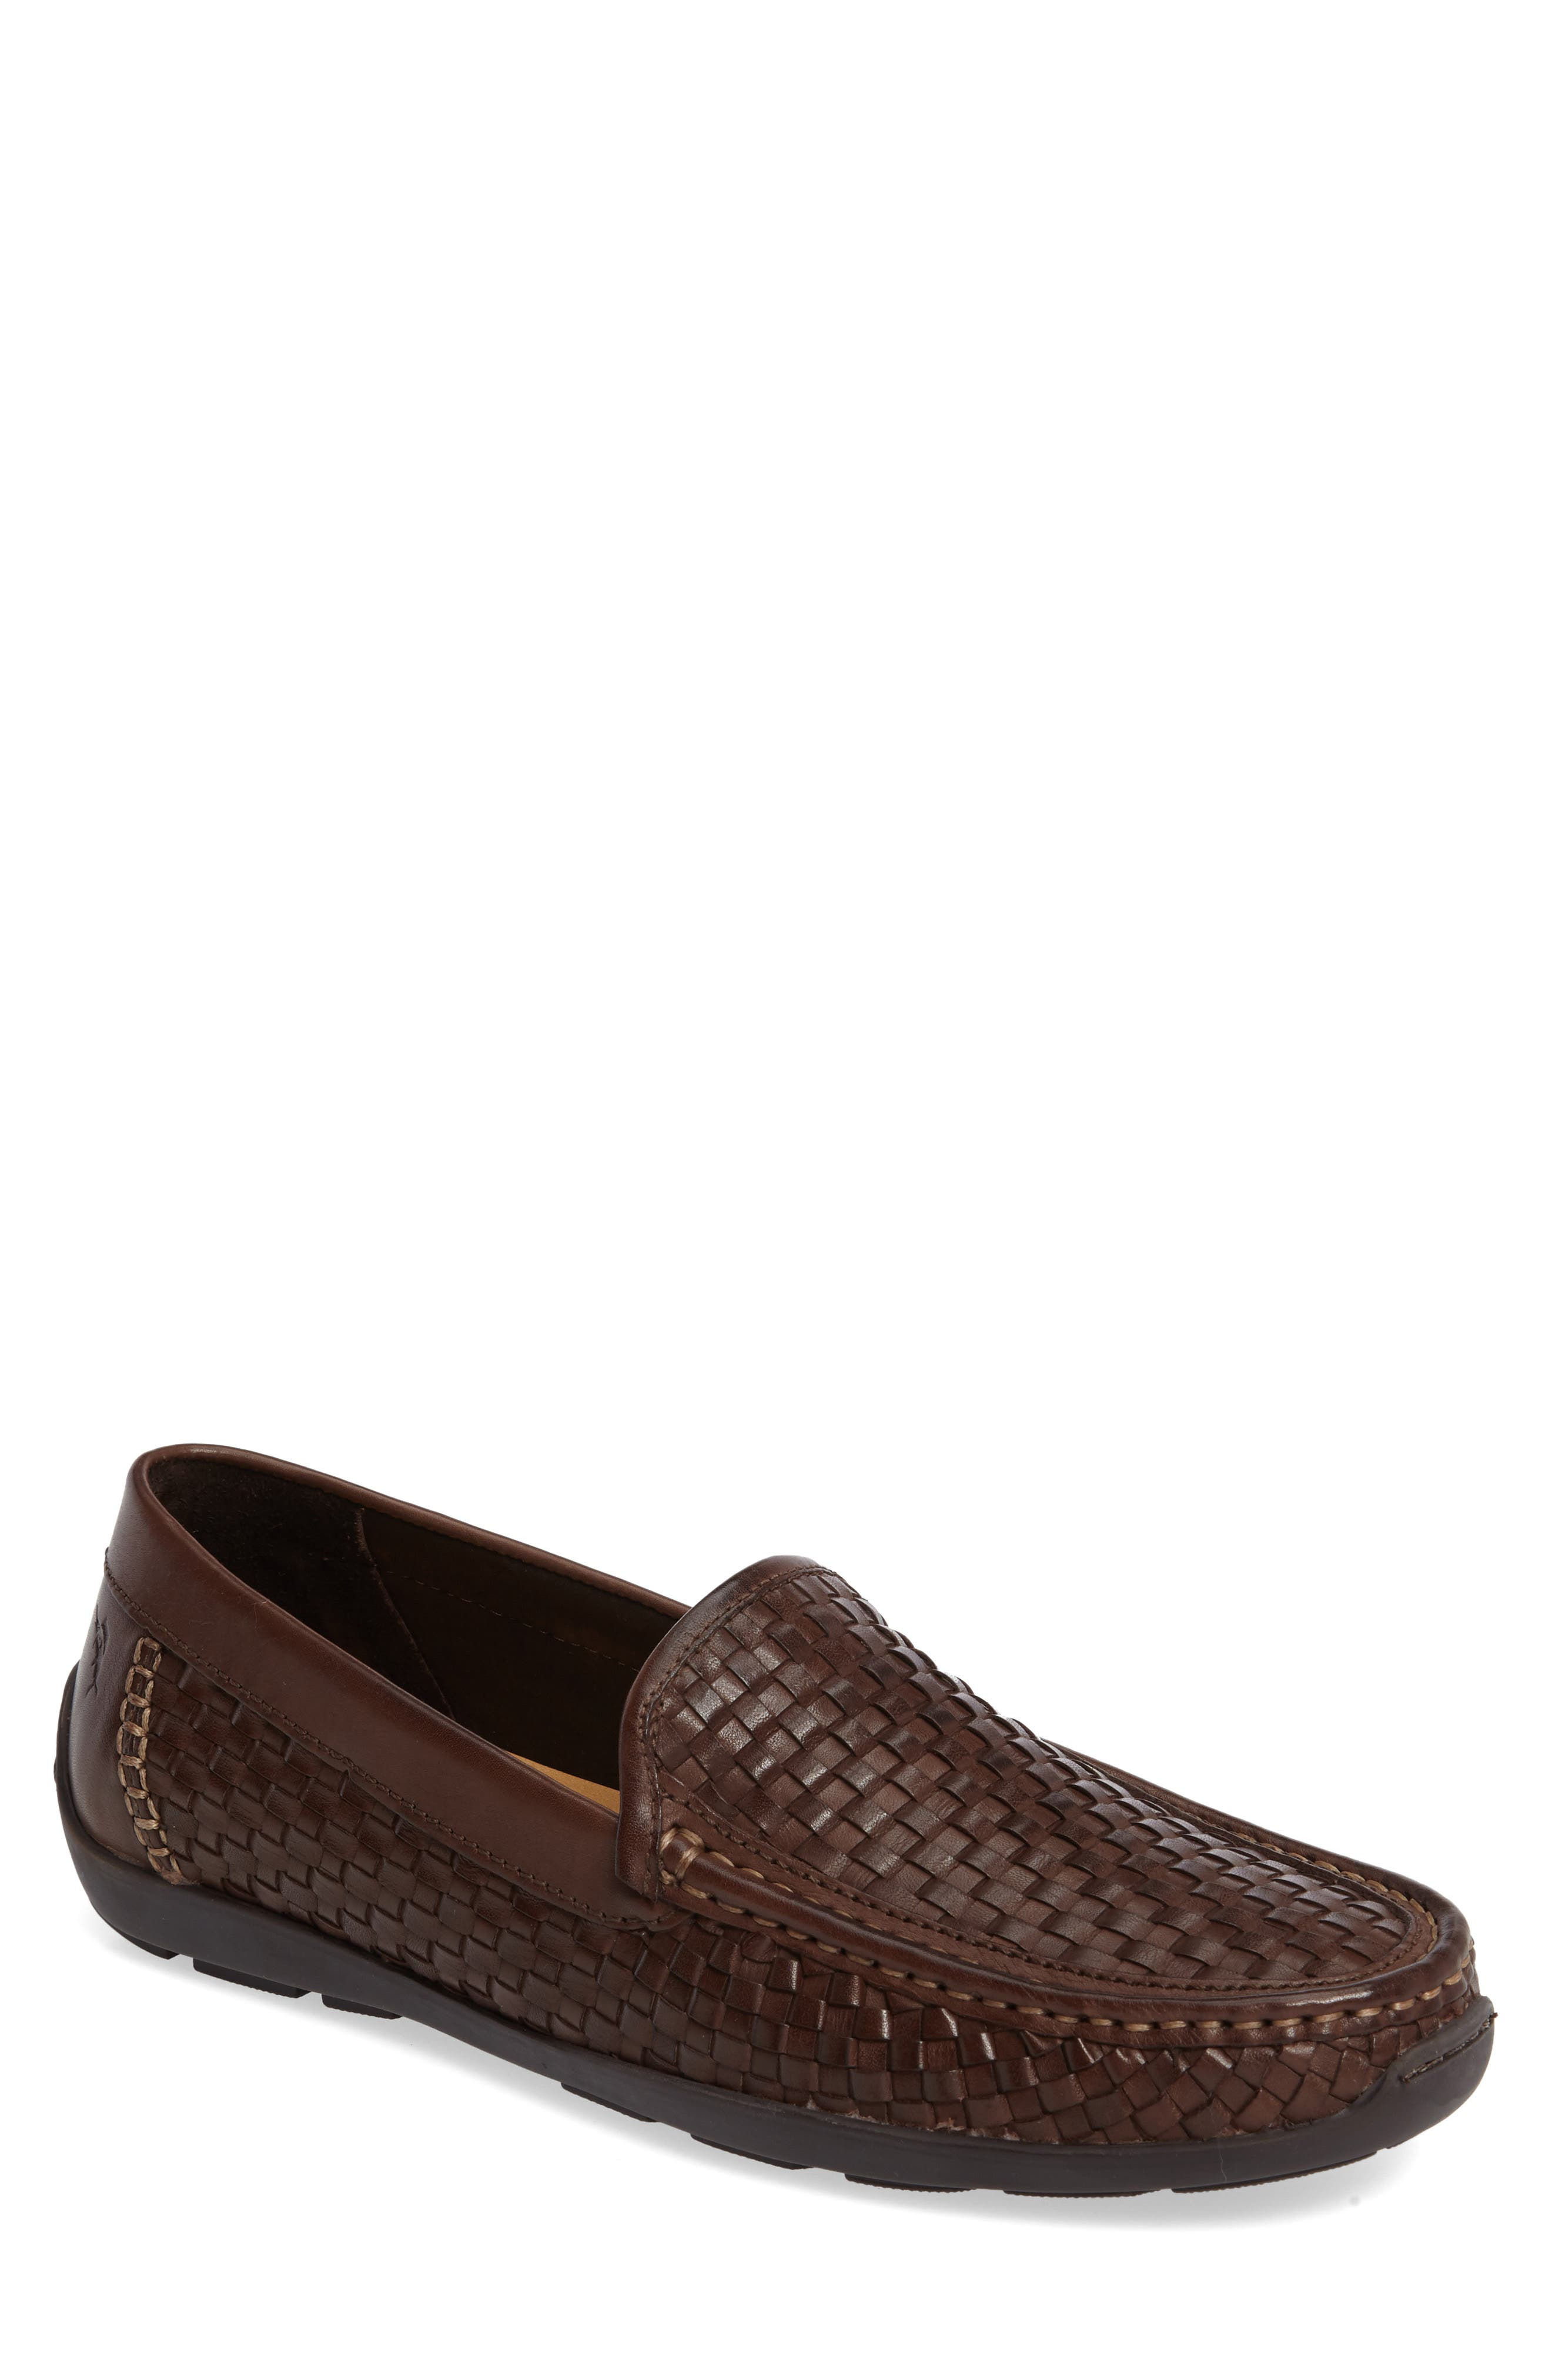 Orson Driving Shoe,                         Main,                         color, Dark Brown Leather